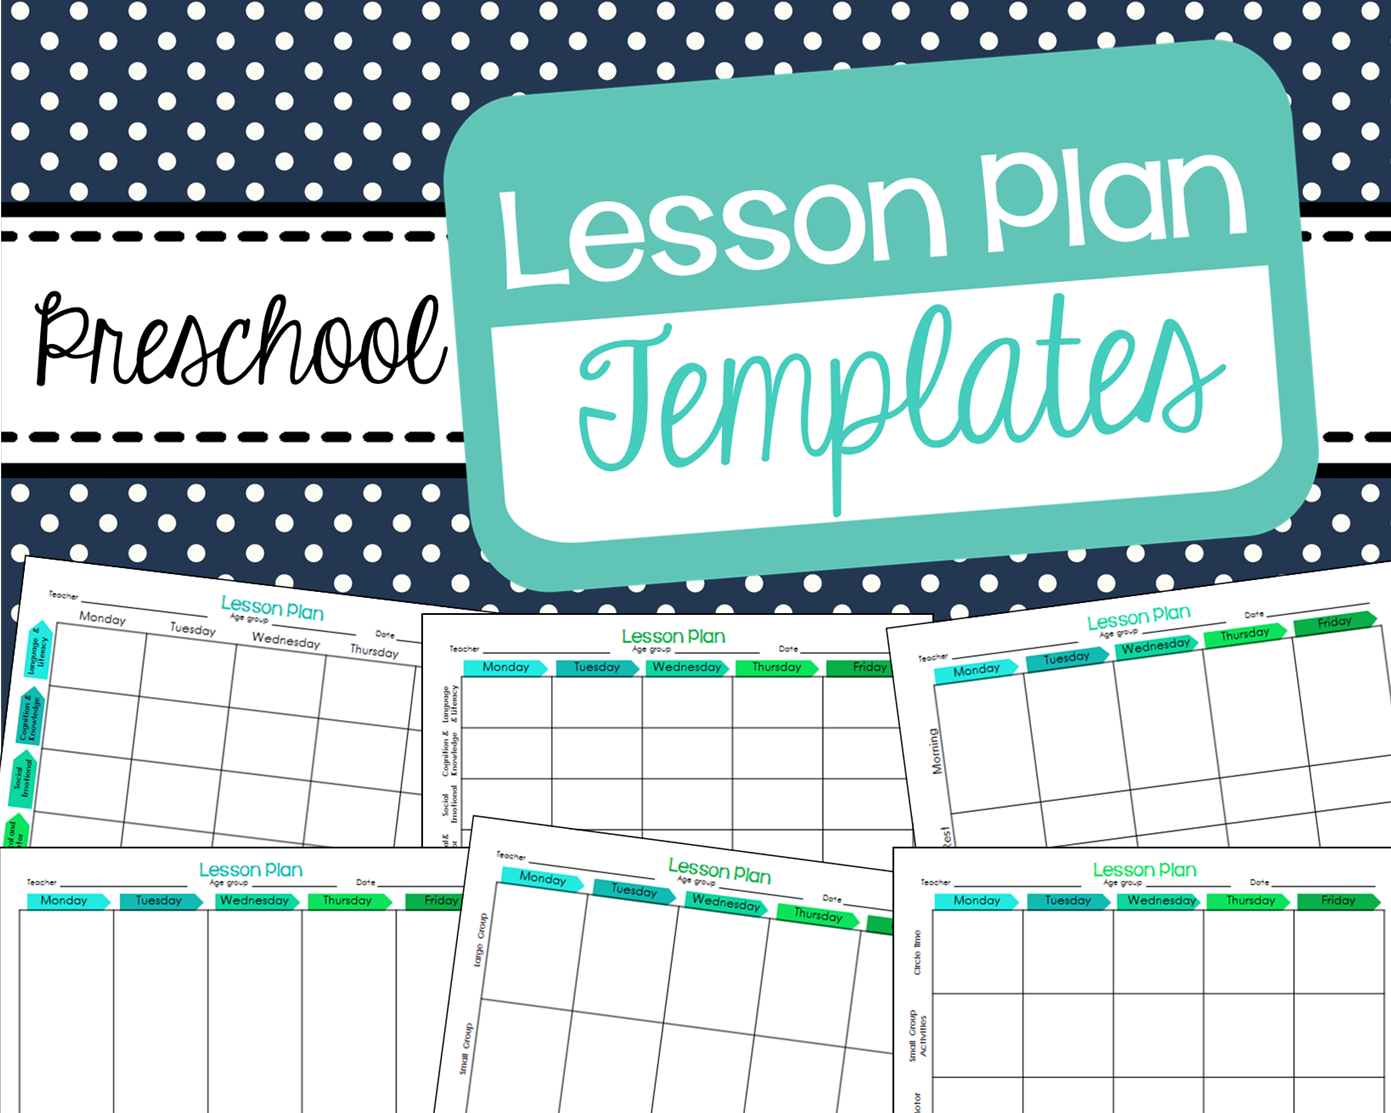 Free Preschool Lesson Plan Templates The Best Of PreK Pinterest - Pre k weekly lesson plan template